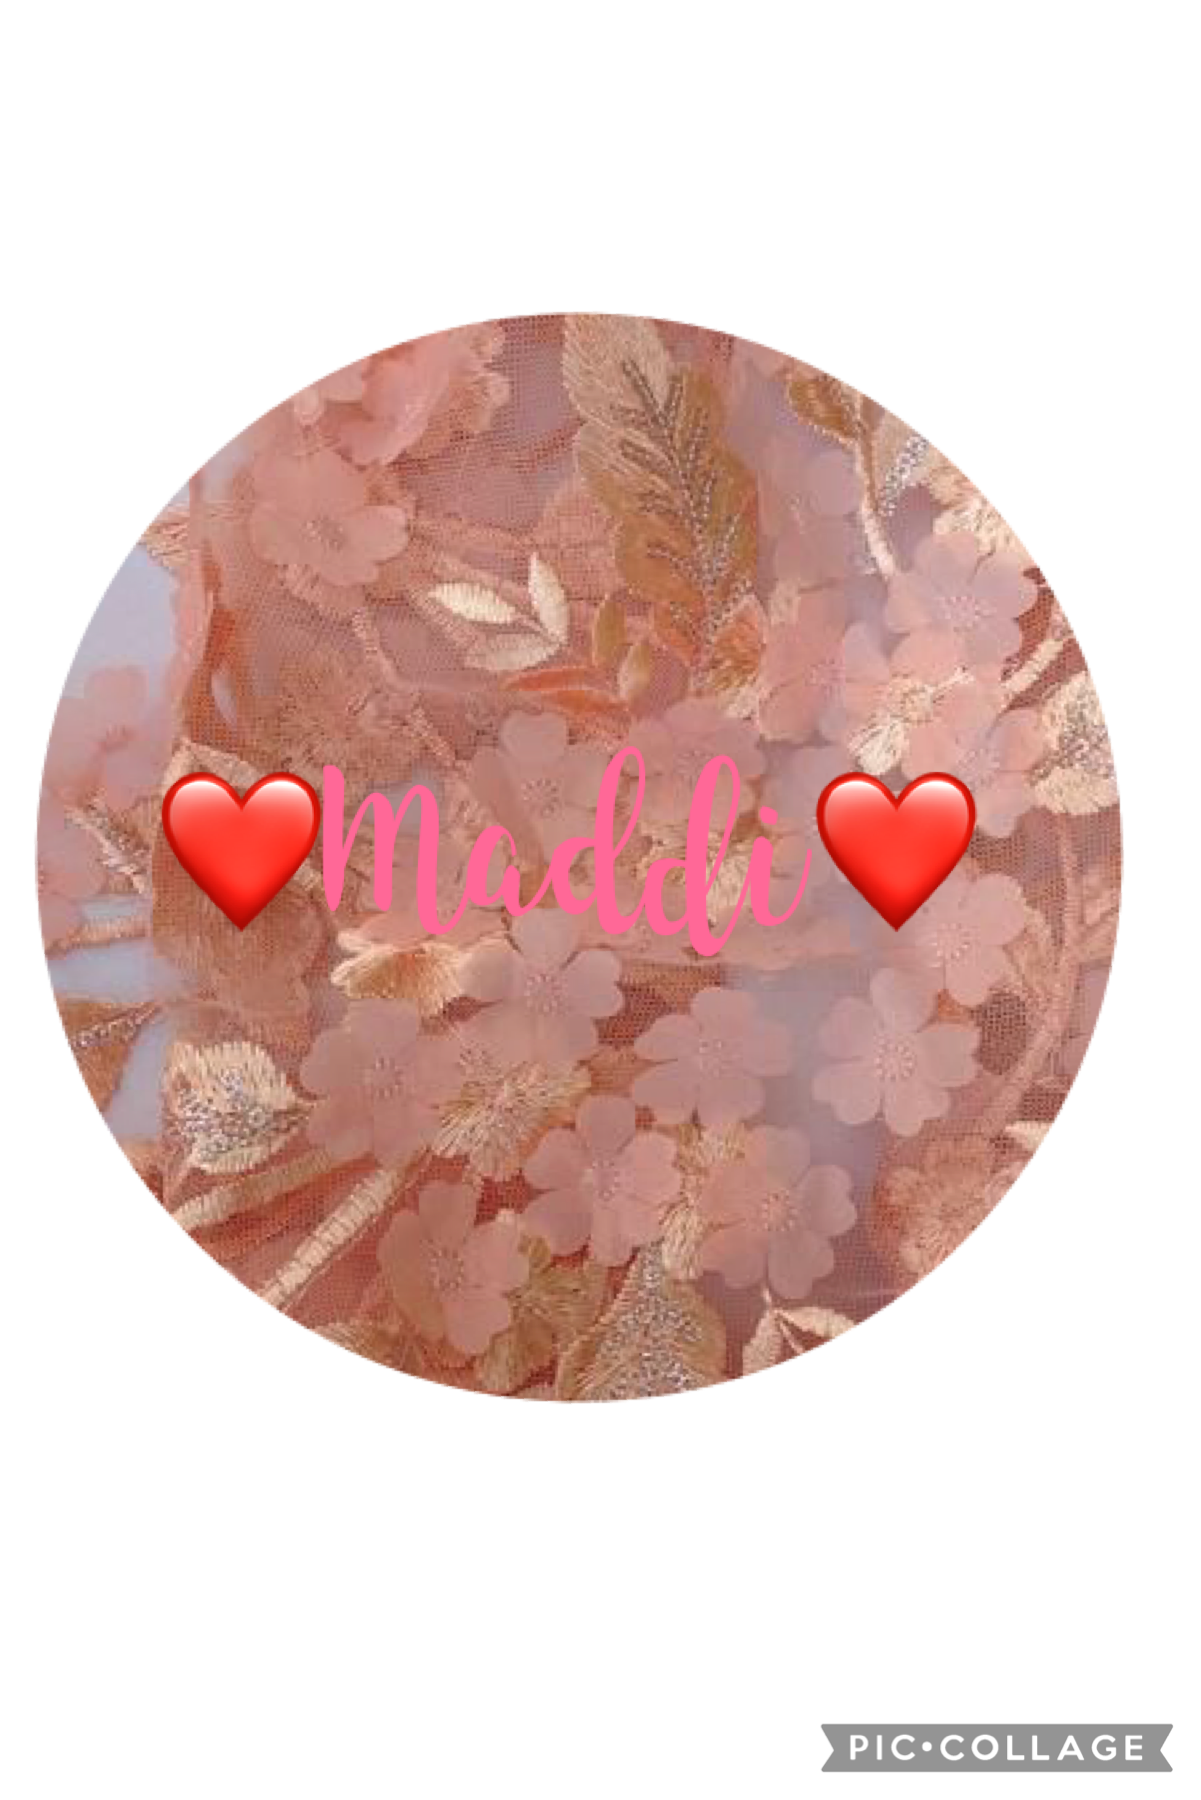 I made this profile pic!